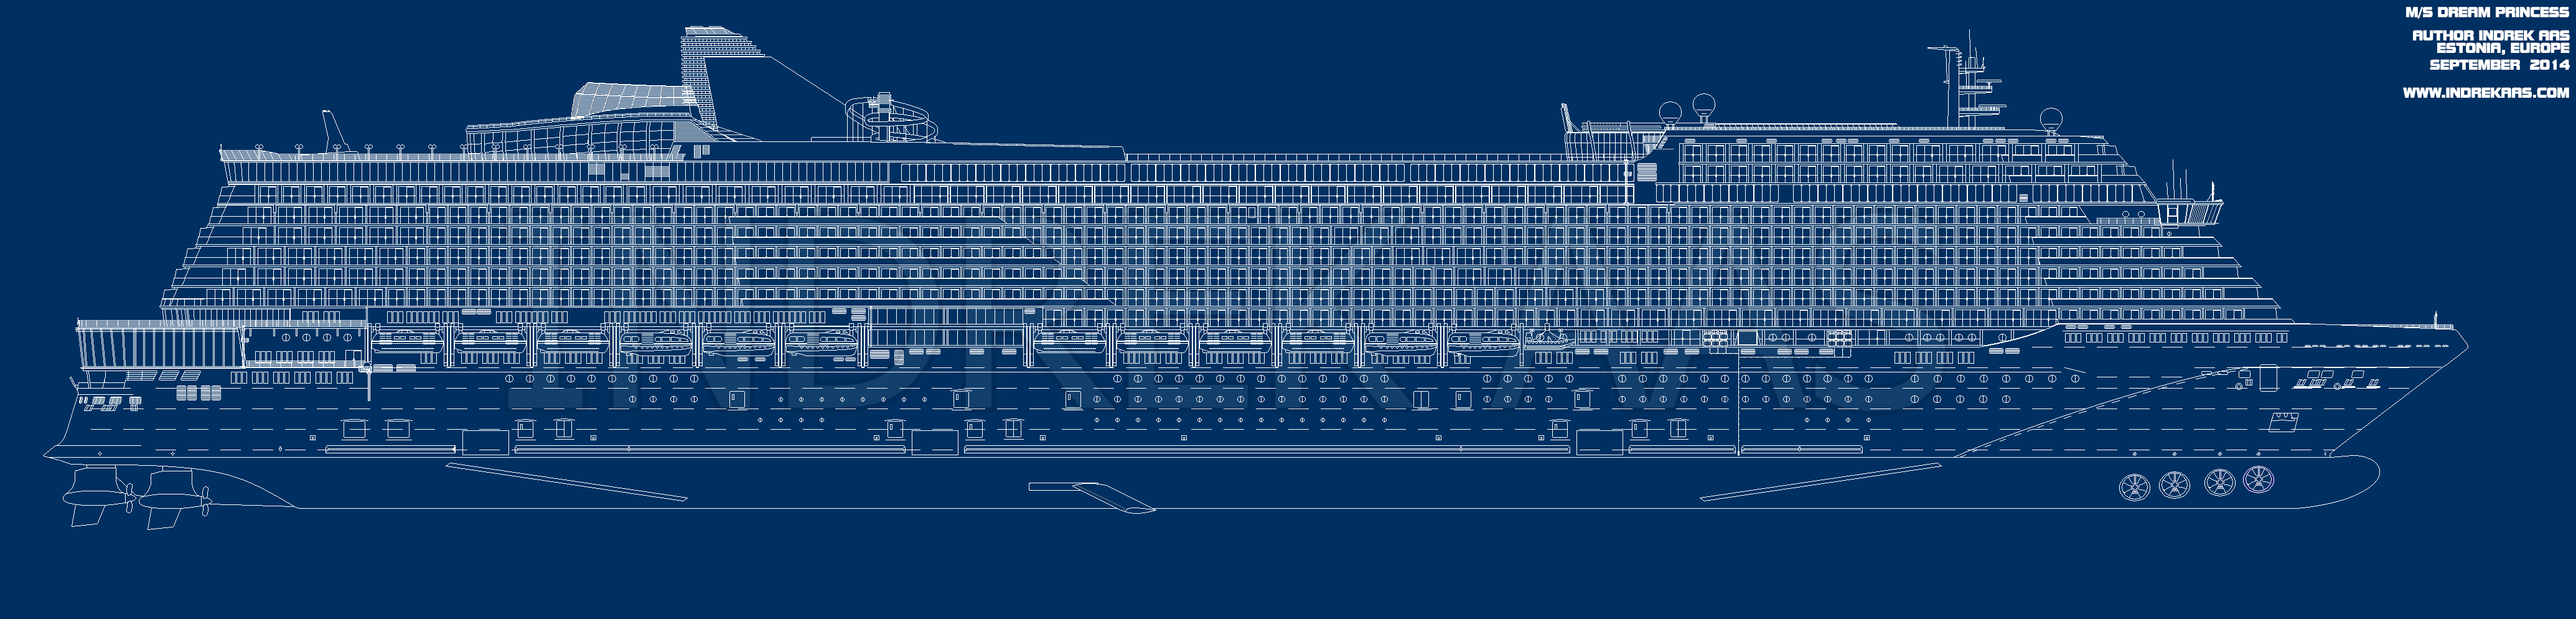 Cruise ship dream meaning exclusive cruise ships an error occurred malvernweather Choice Image